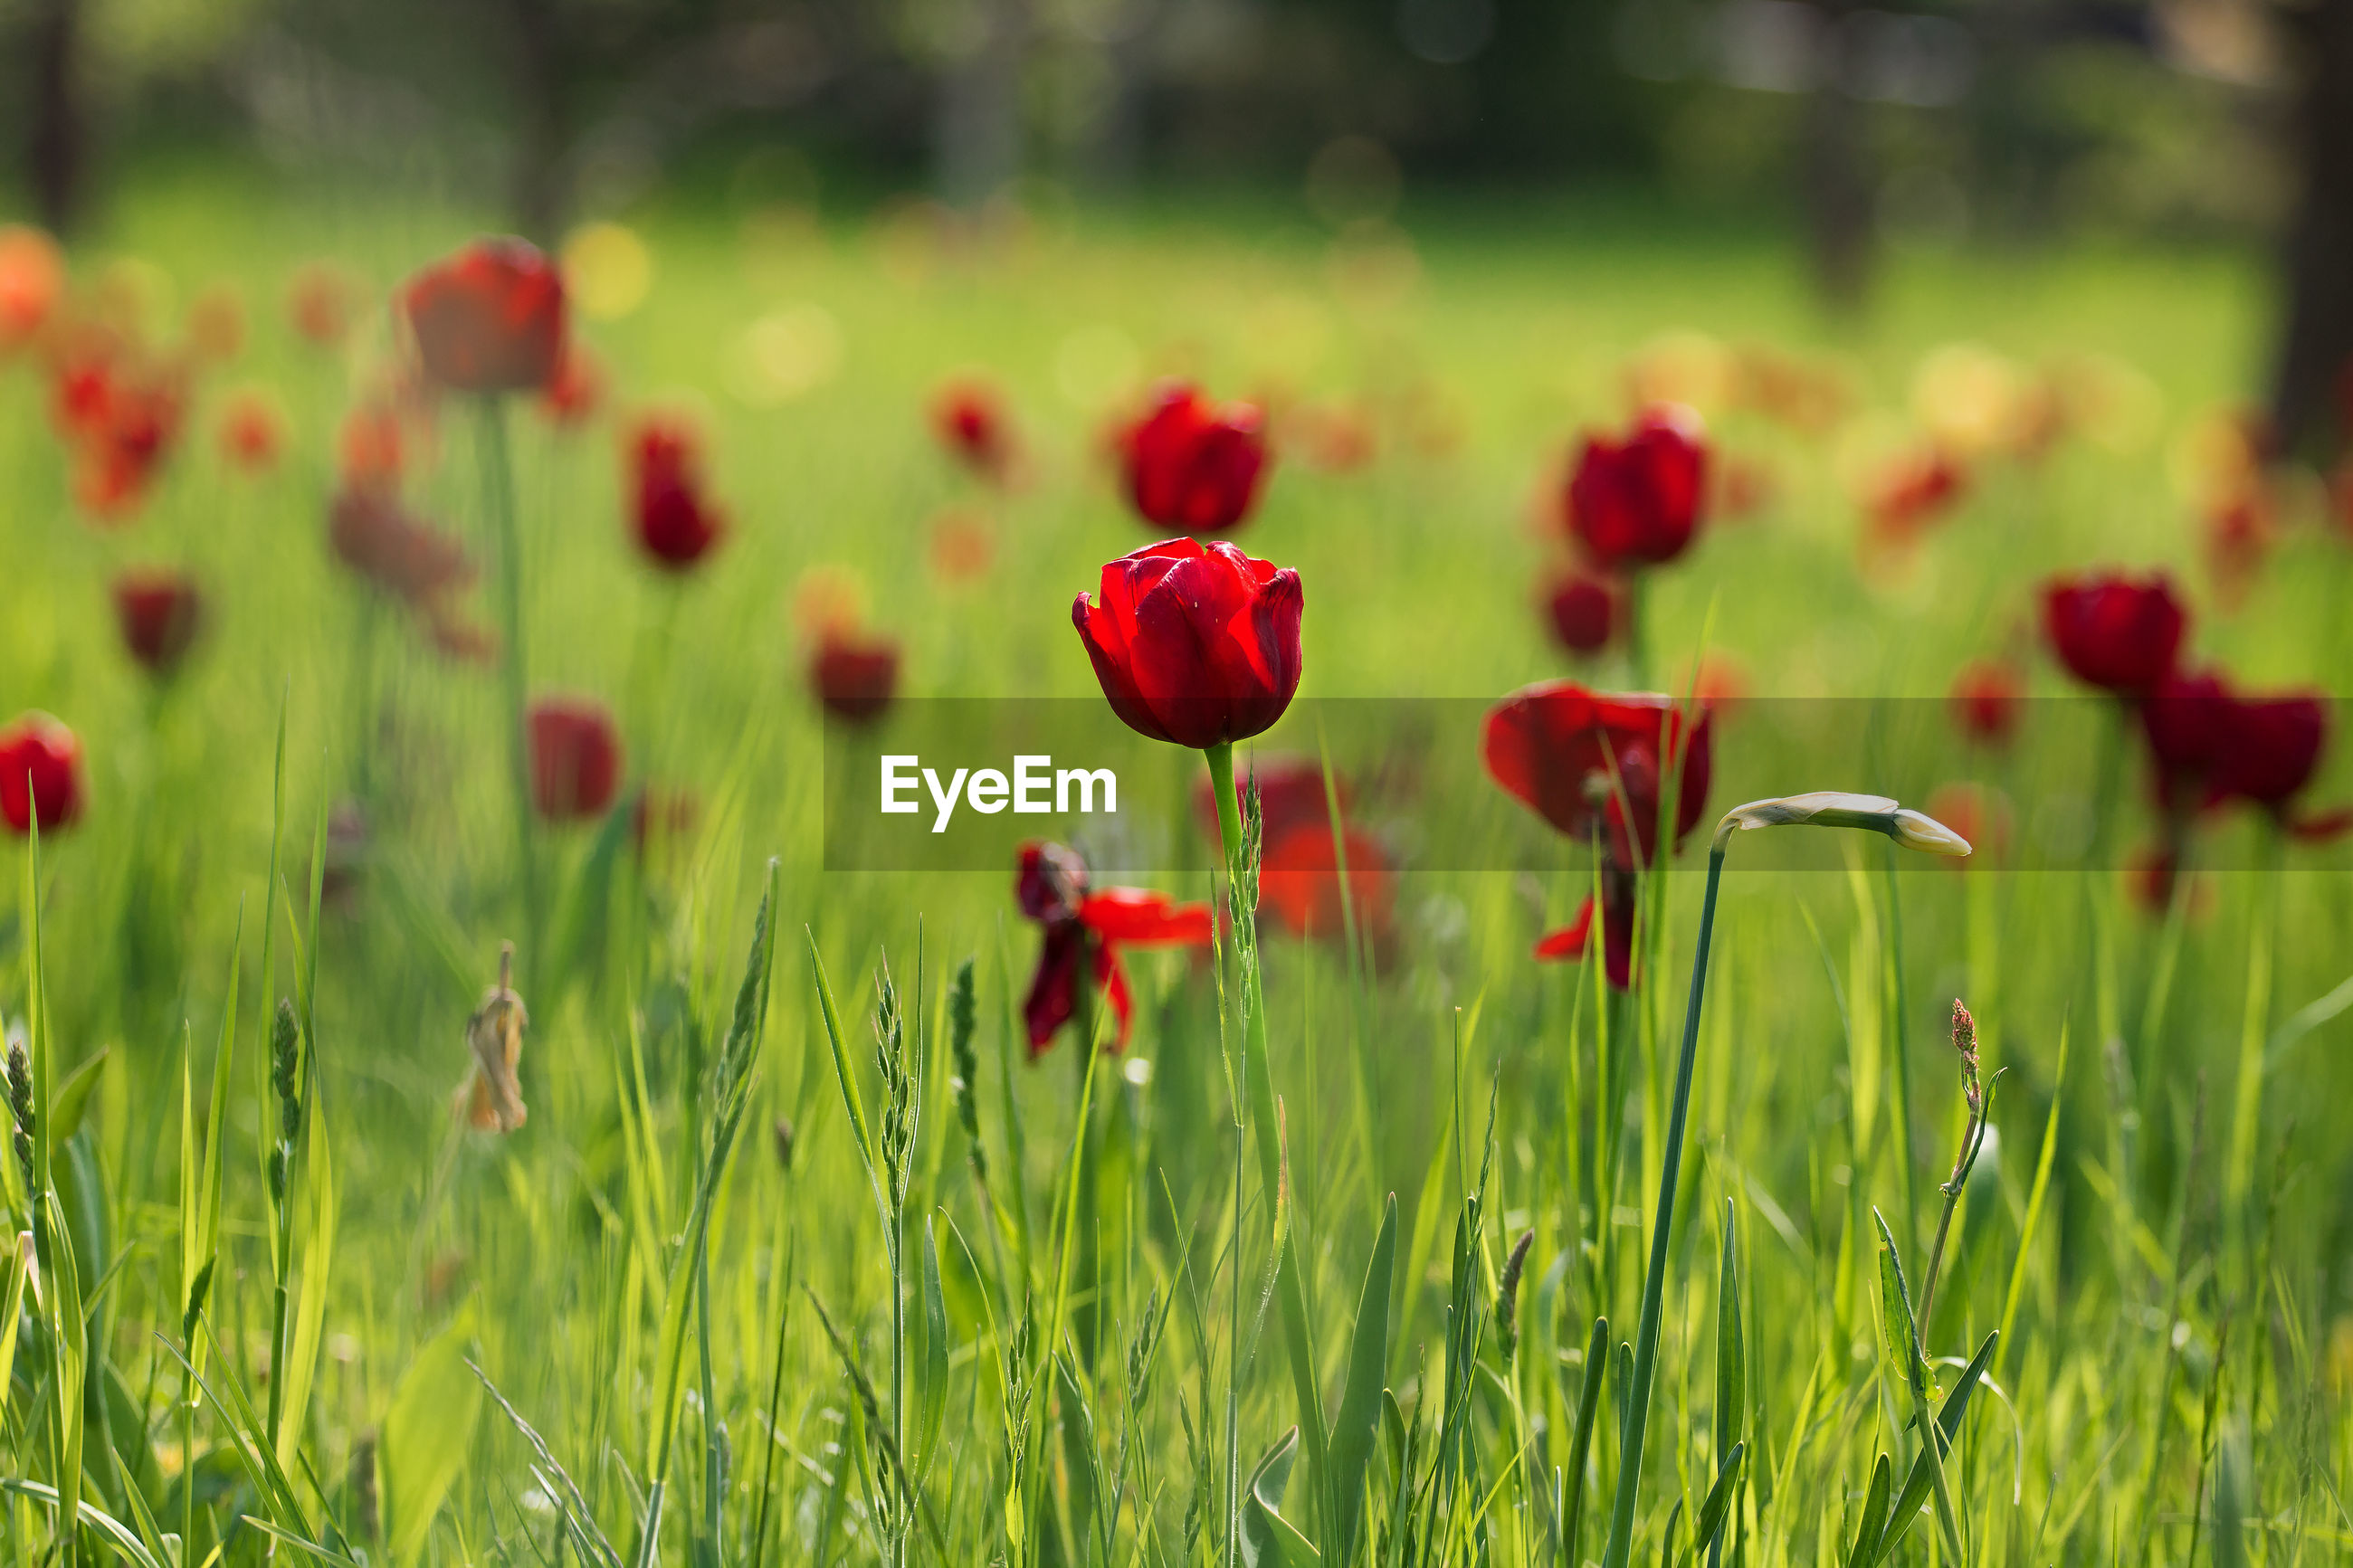 Close-up of poppy blooming in field